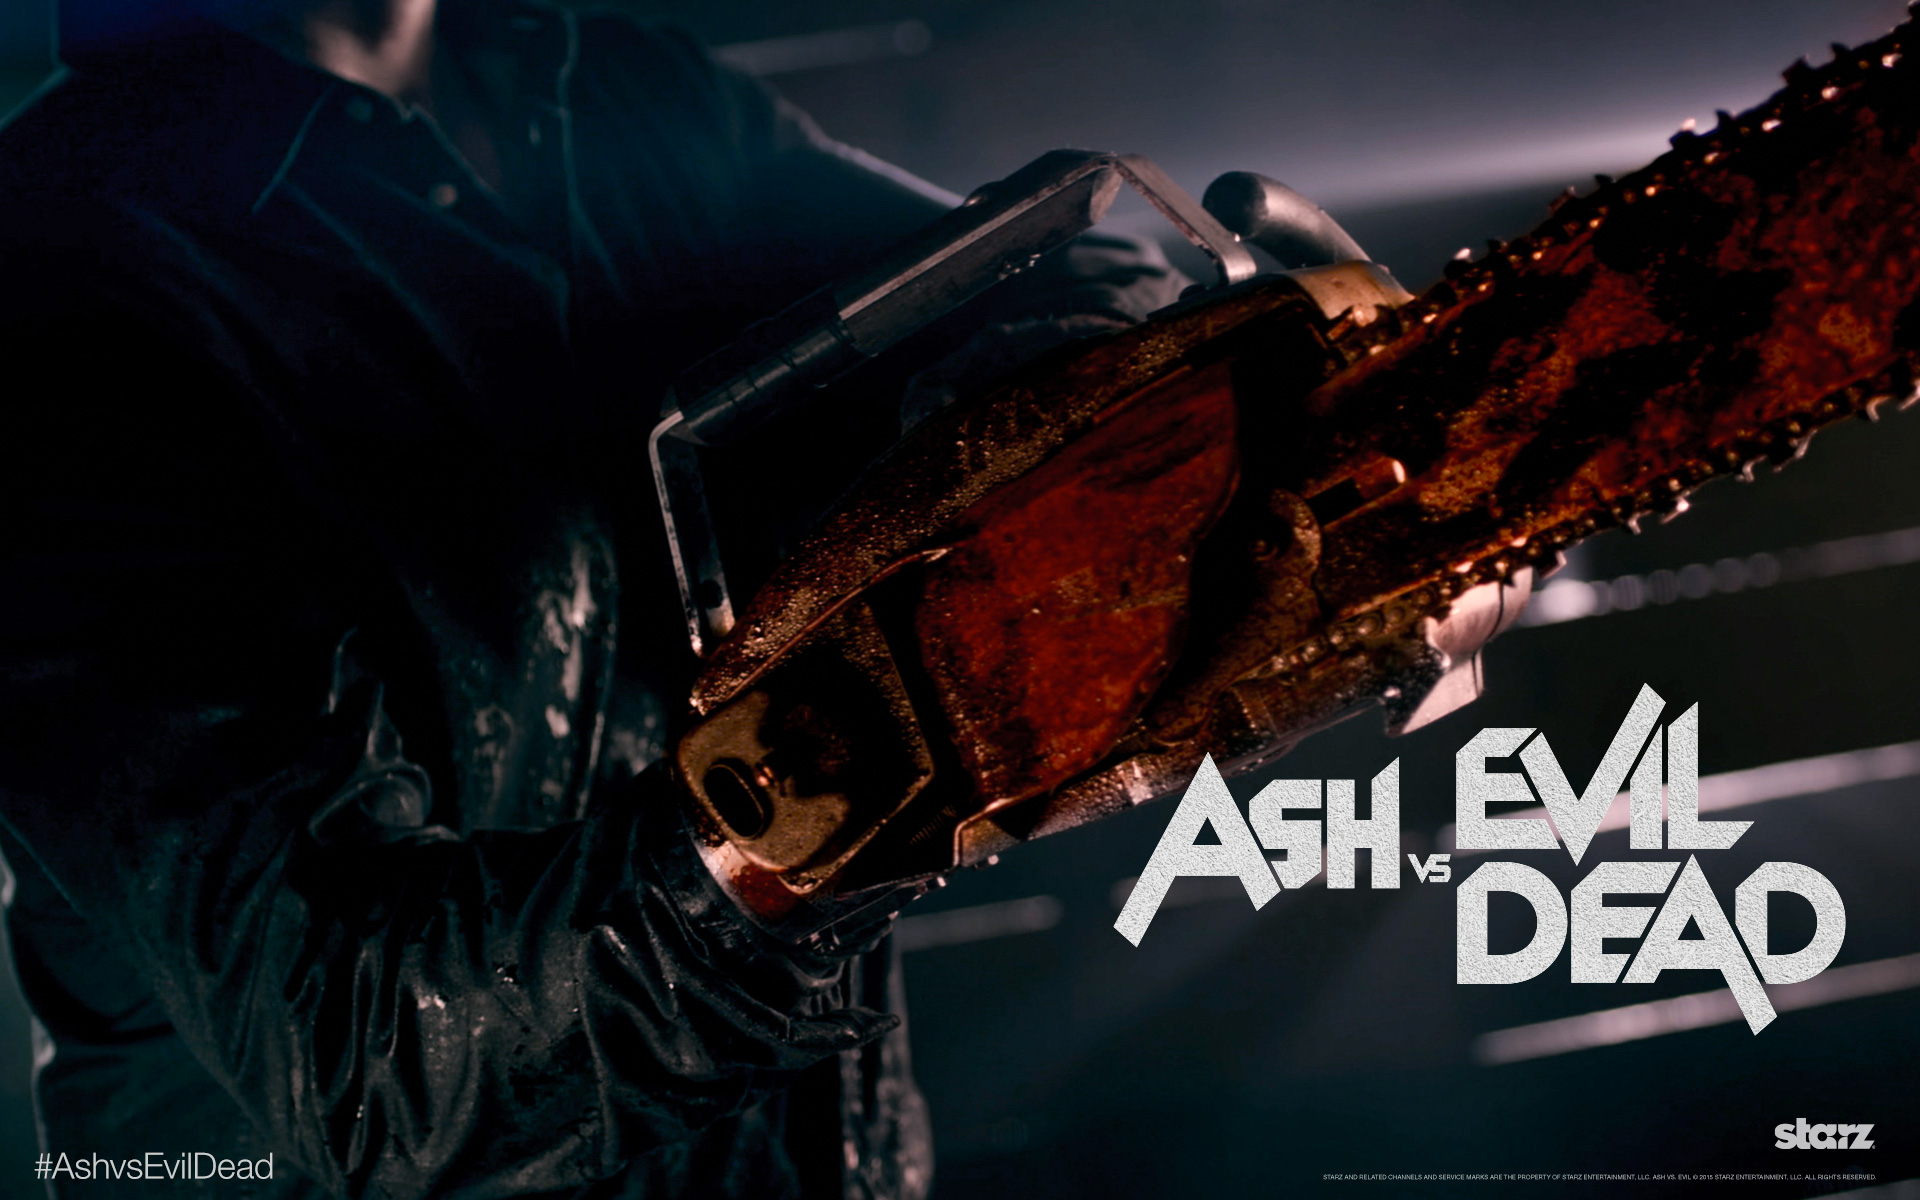 Ash Vs Evil Dead The Camp The Mayhem The Main Man Ash Williams Is Back Bloody Whisper